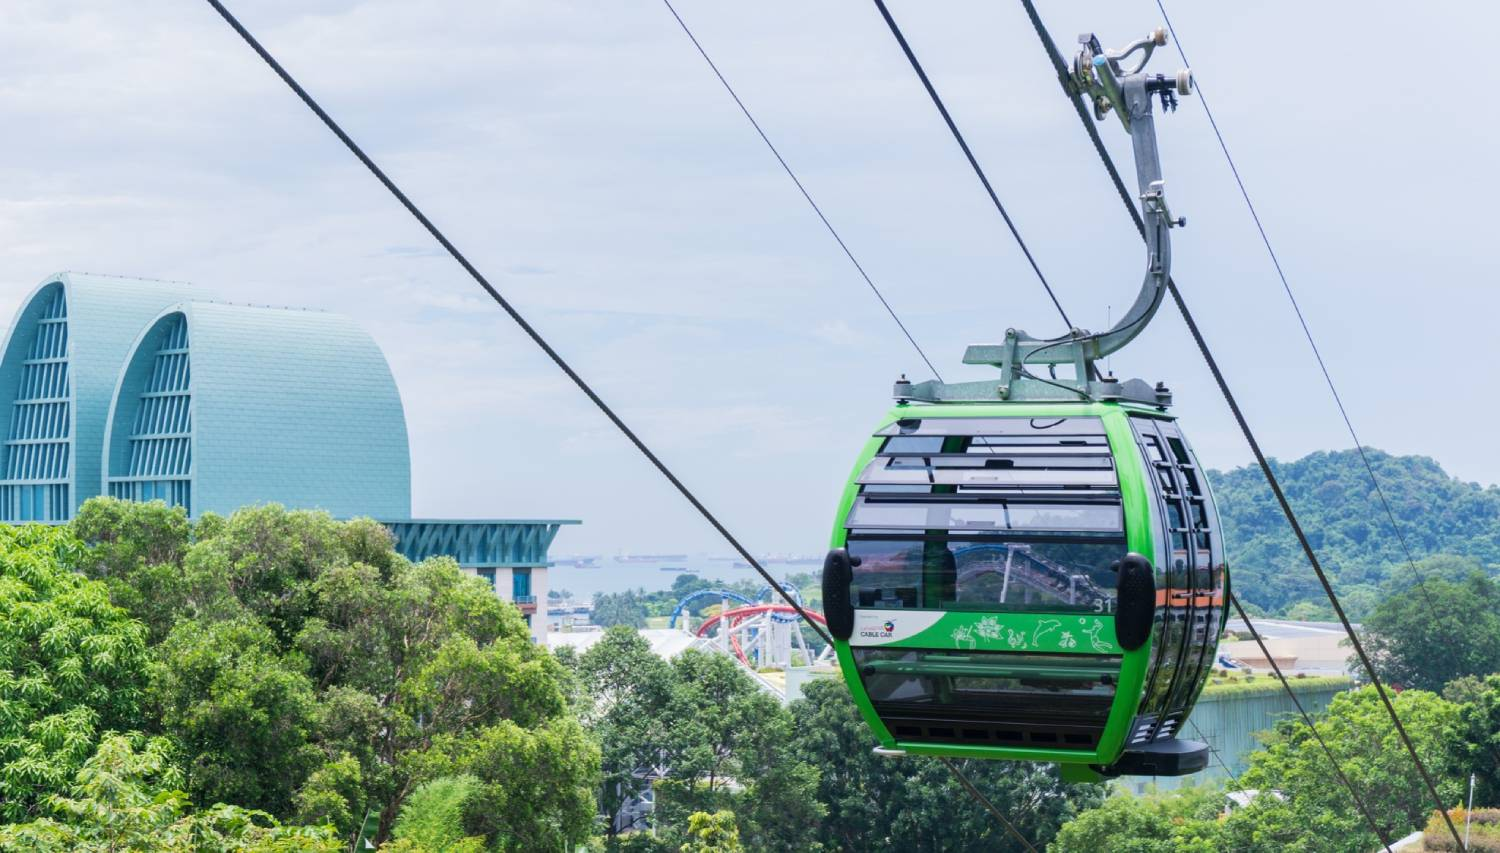 Singapore Cable Car - Things To Do In Singapore